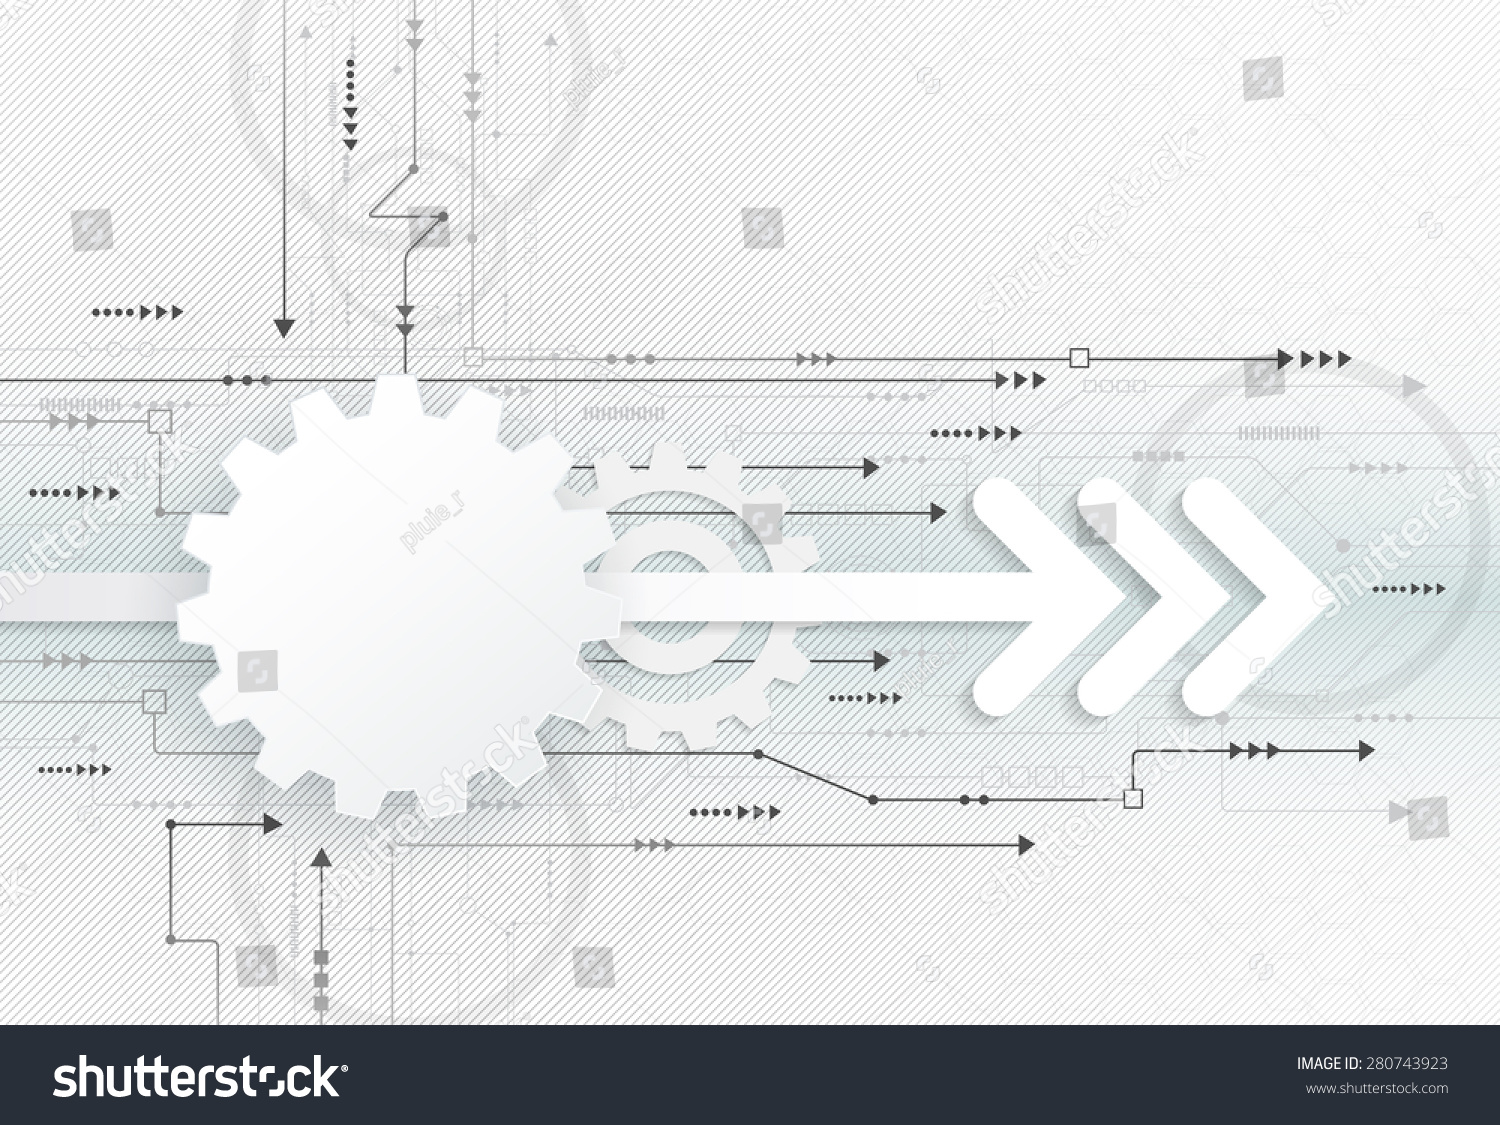 Royalty Free Vector Abstract Futuristic 3d White 280743923 Stock Engineering Schematic Symbols Get Image About Wiring Diagram Paper Gear Wheel With Arrow Symbol On Circuit Board High Computer Speed Technology Concept